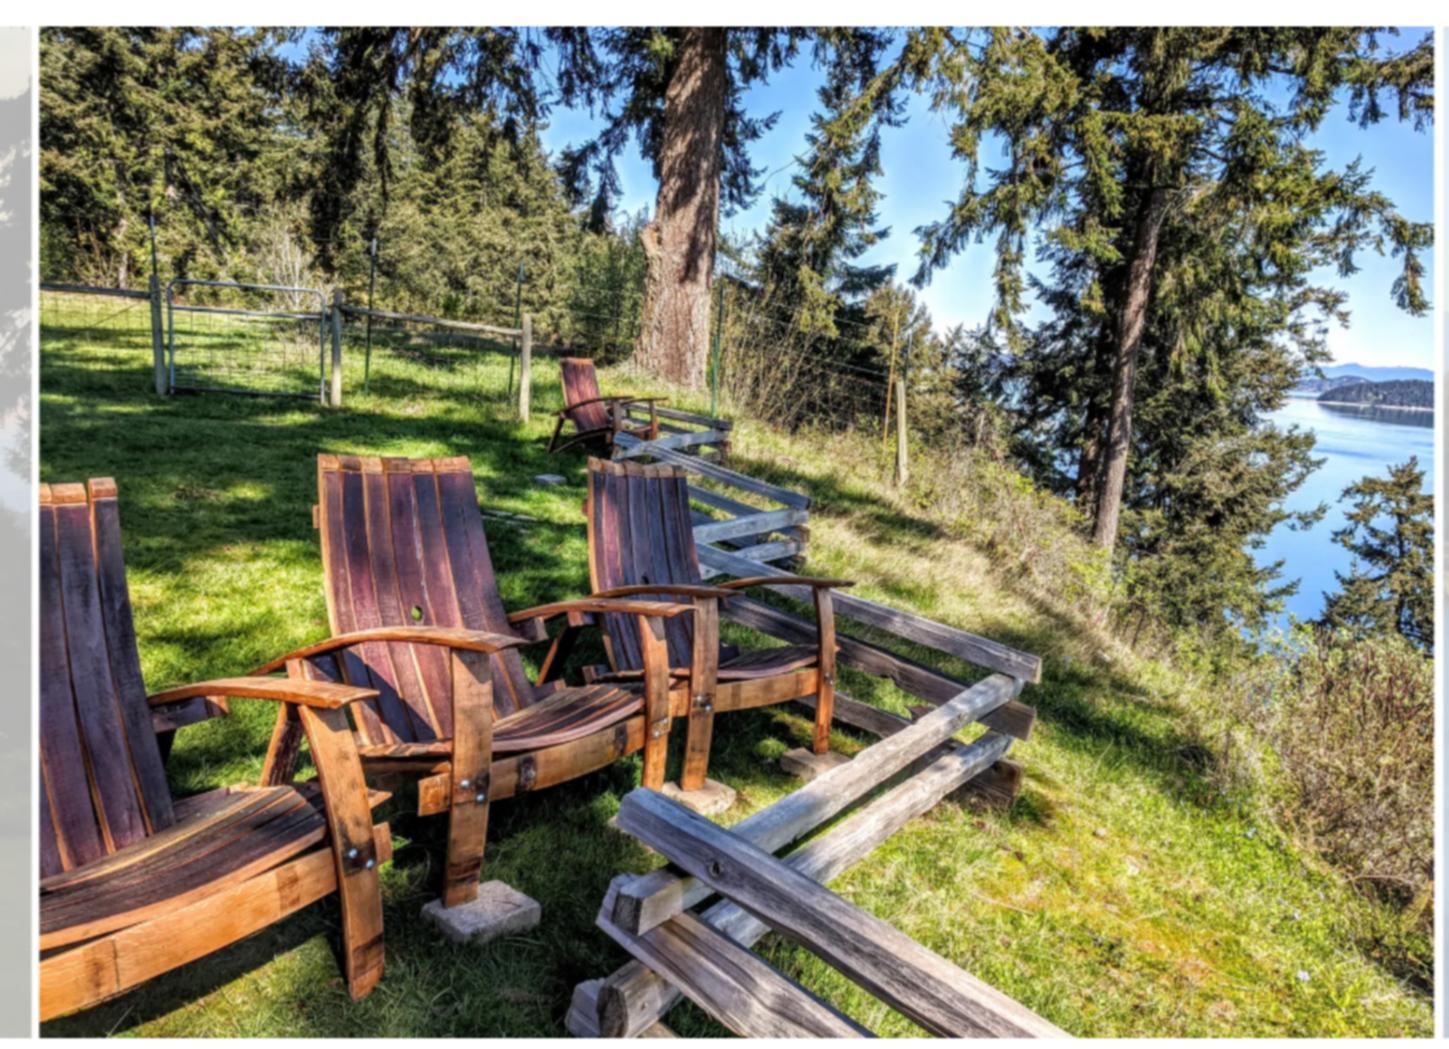 A wooden bench in a park at The Bluff on Whidbey Bed & Breakfast.